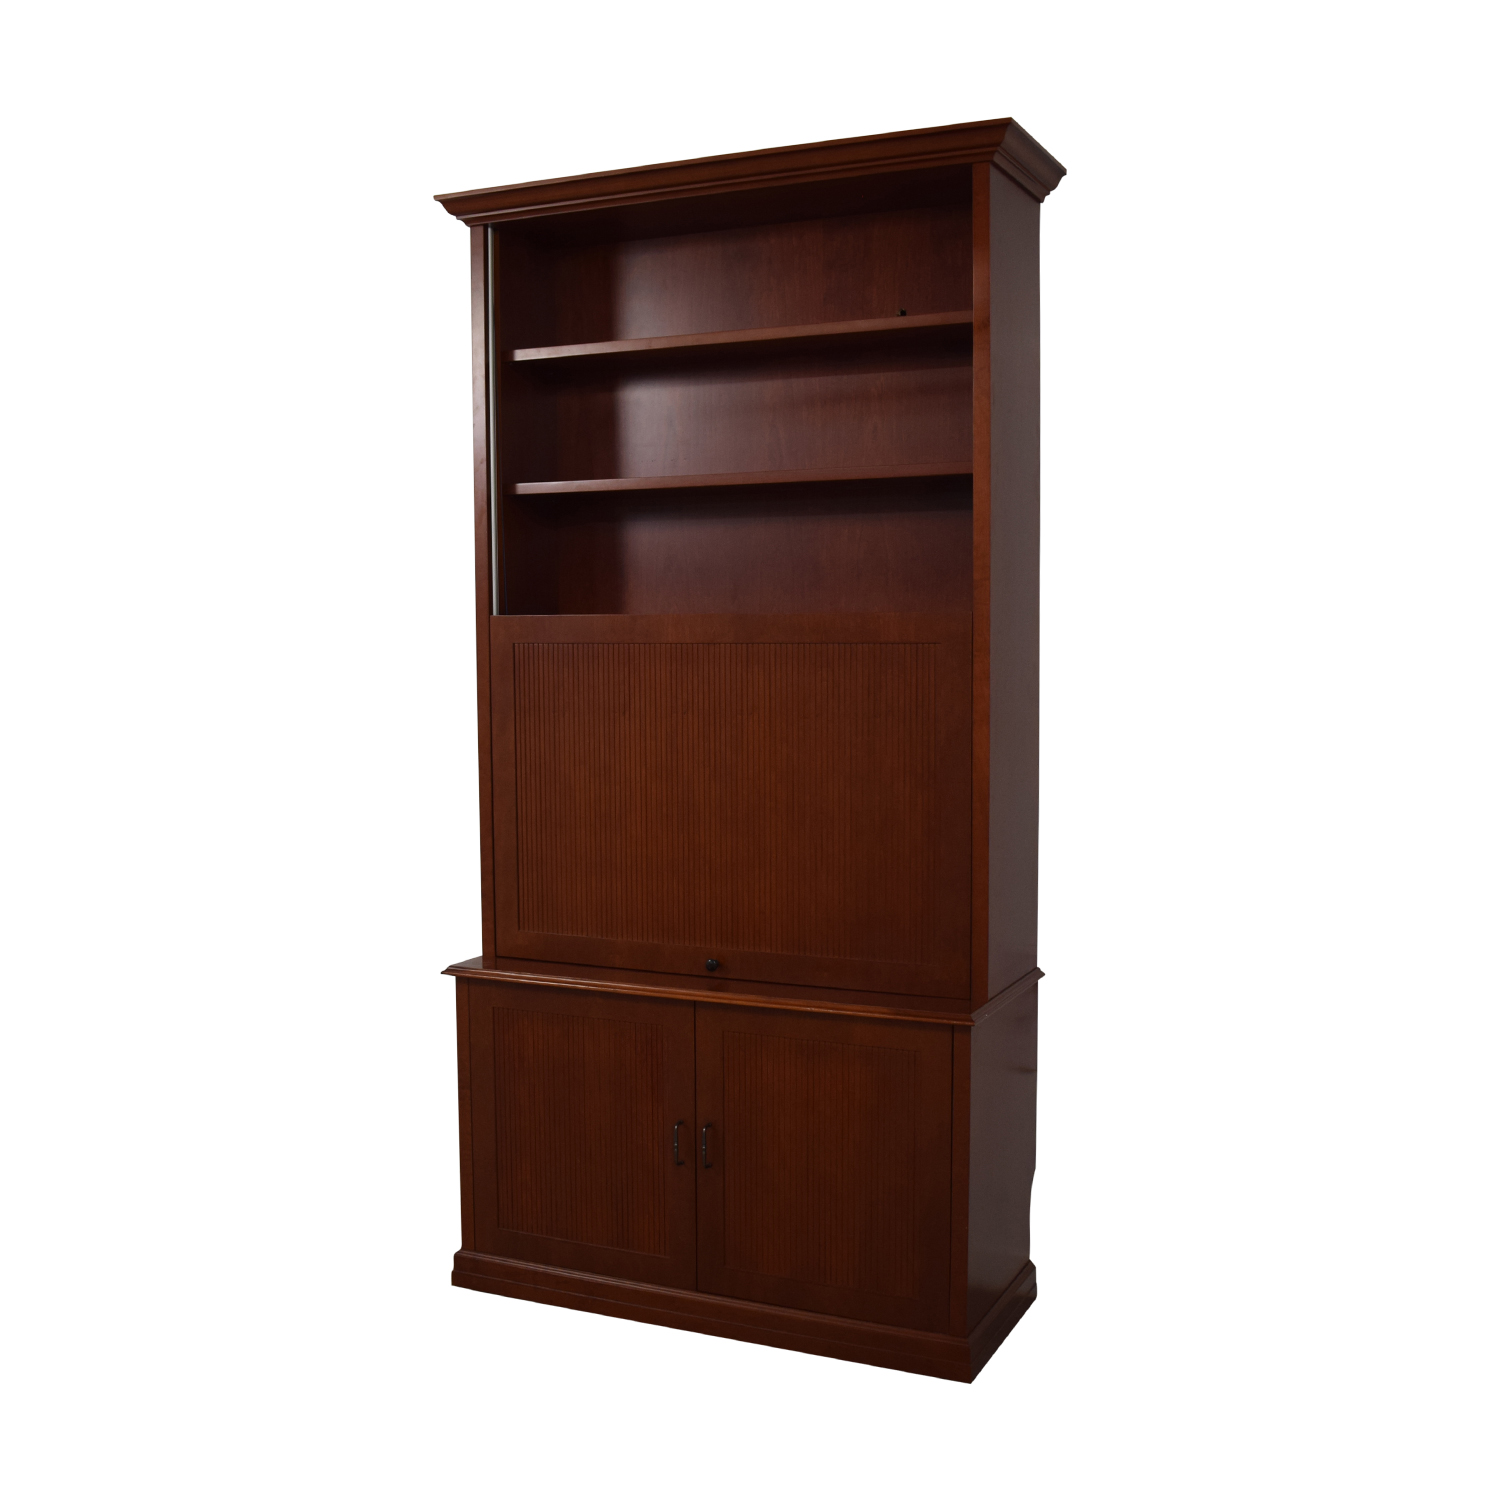 Manhattan Home Design Manhattan Home Design Bookshelf and TV Unit on sale